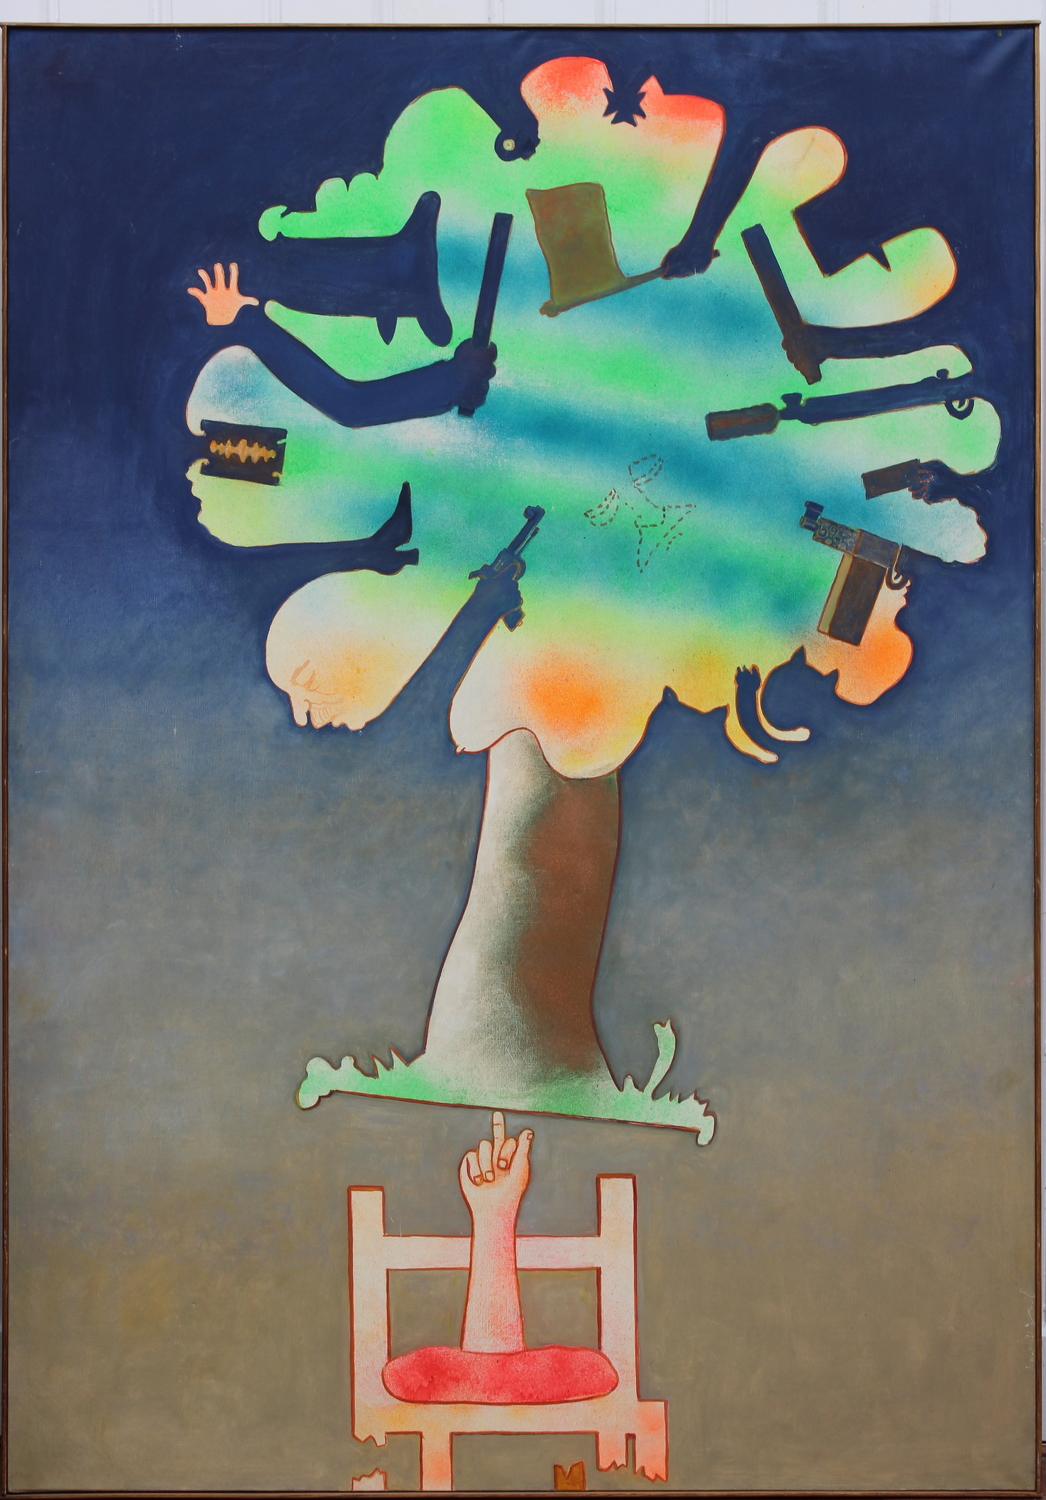 Hugh Weiss-Dernier arbre - The last tree-1971